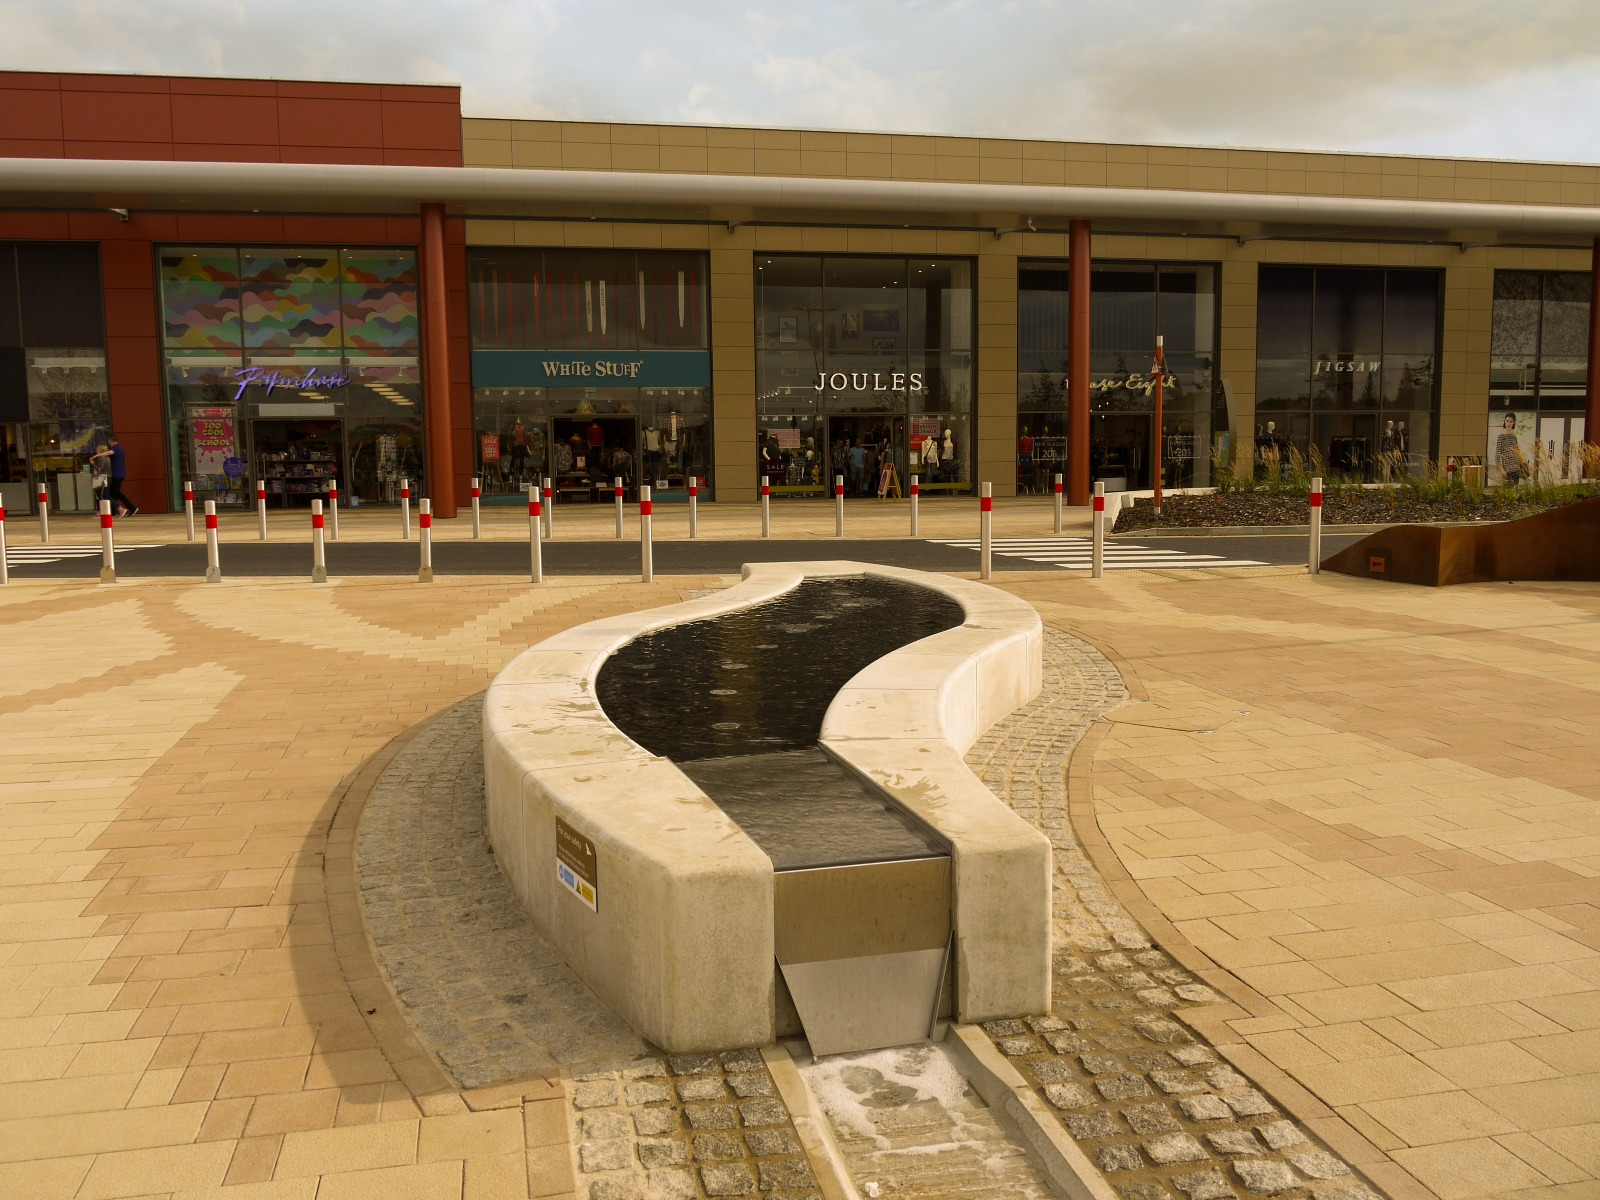 Ascot waste bins for major shopping and leisure complex